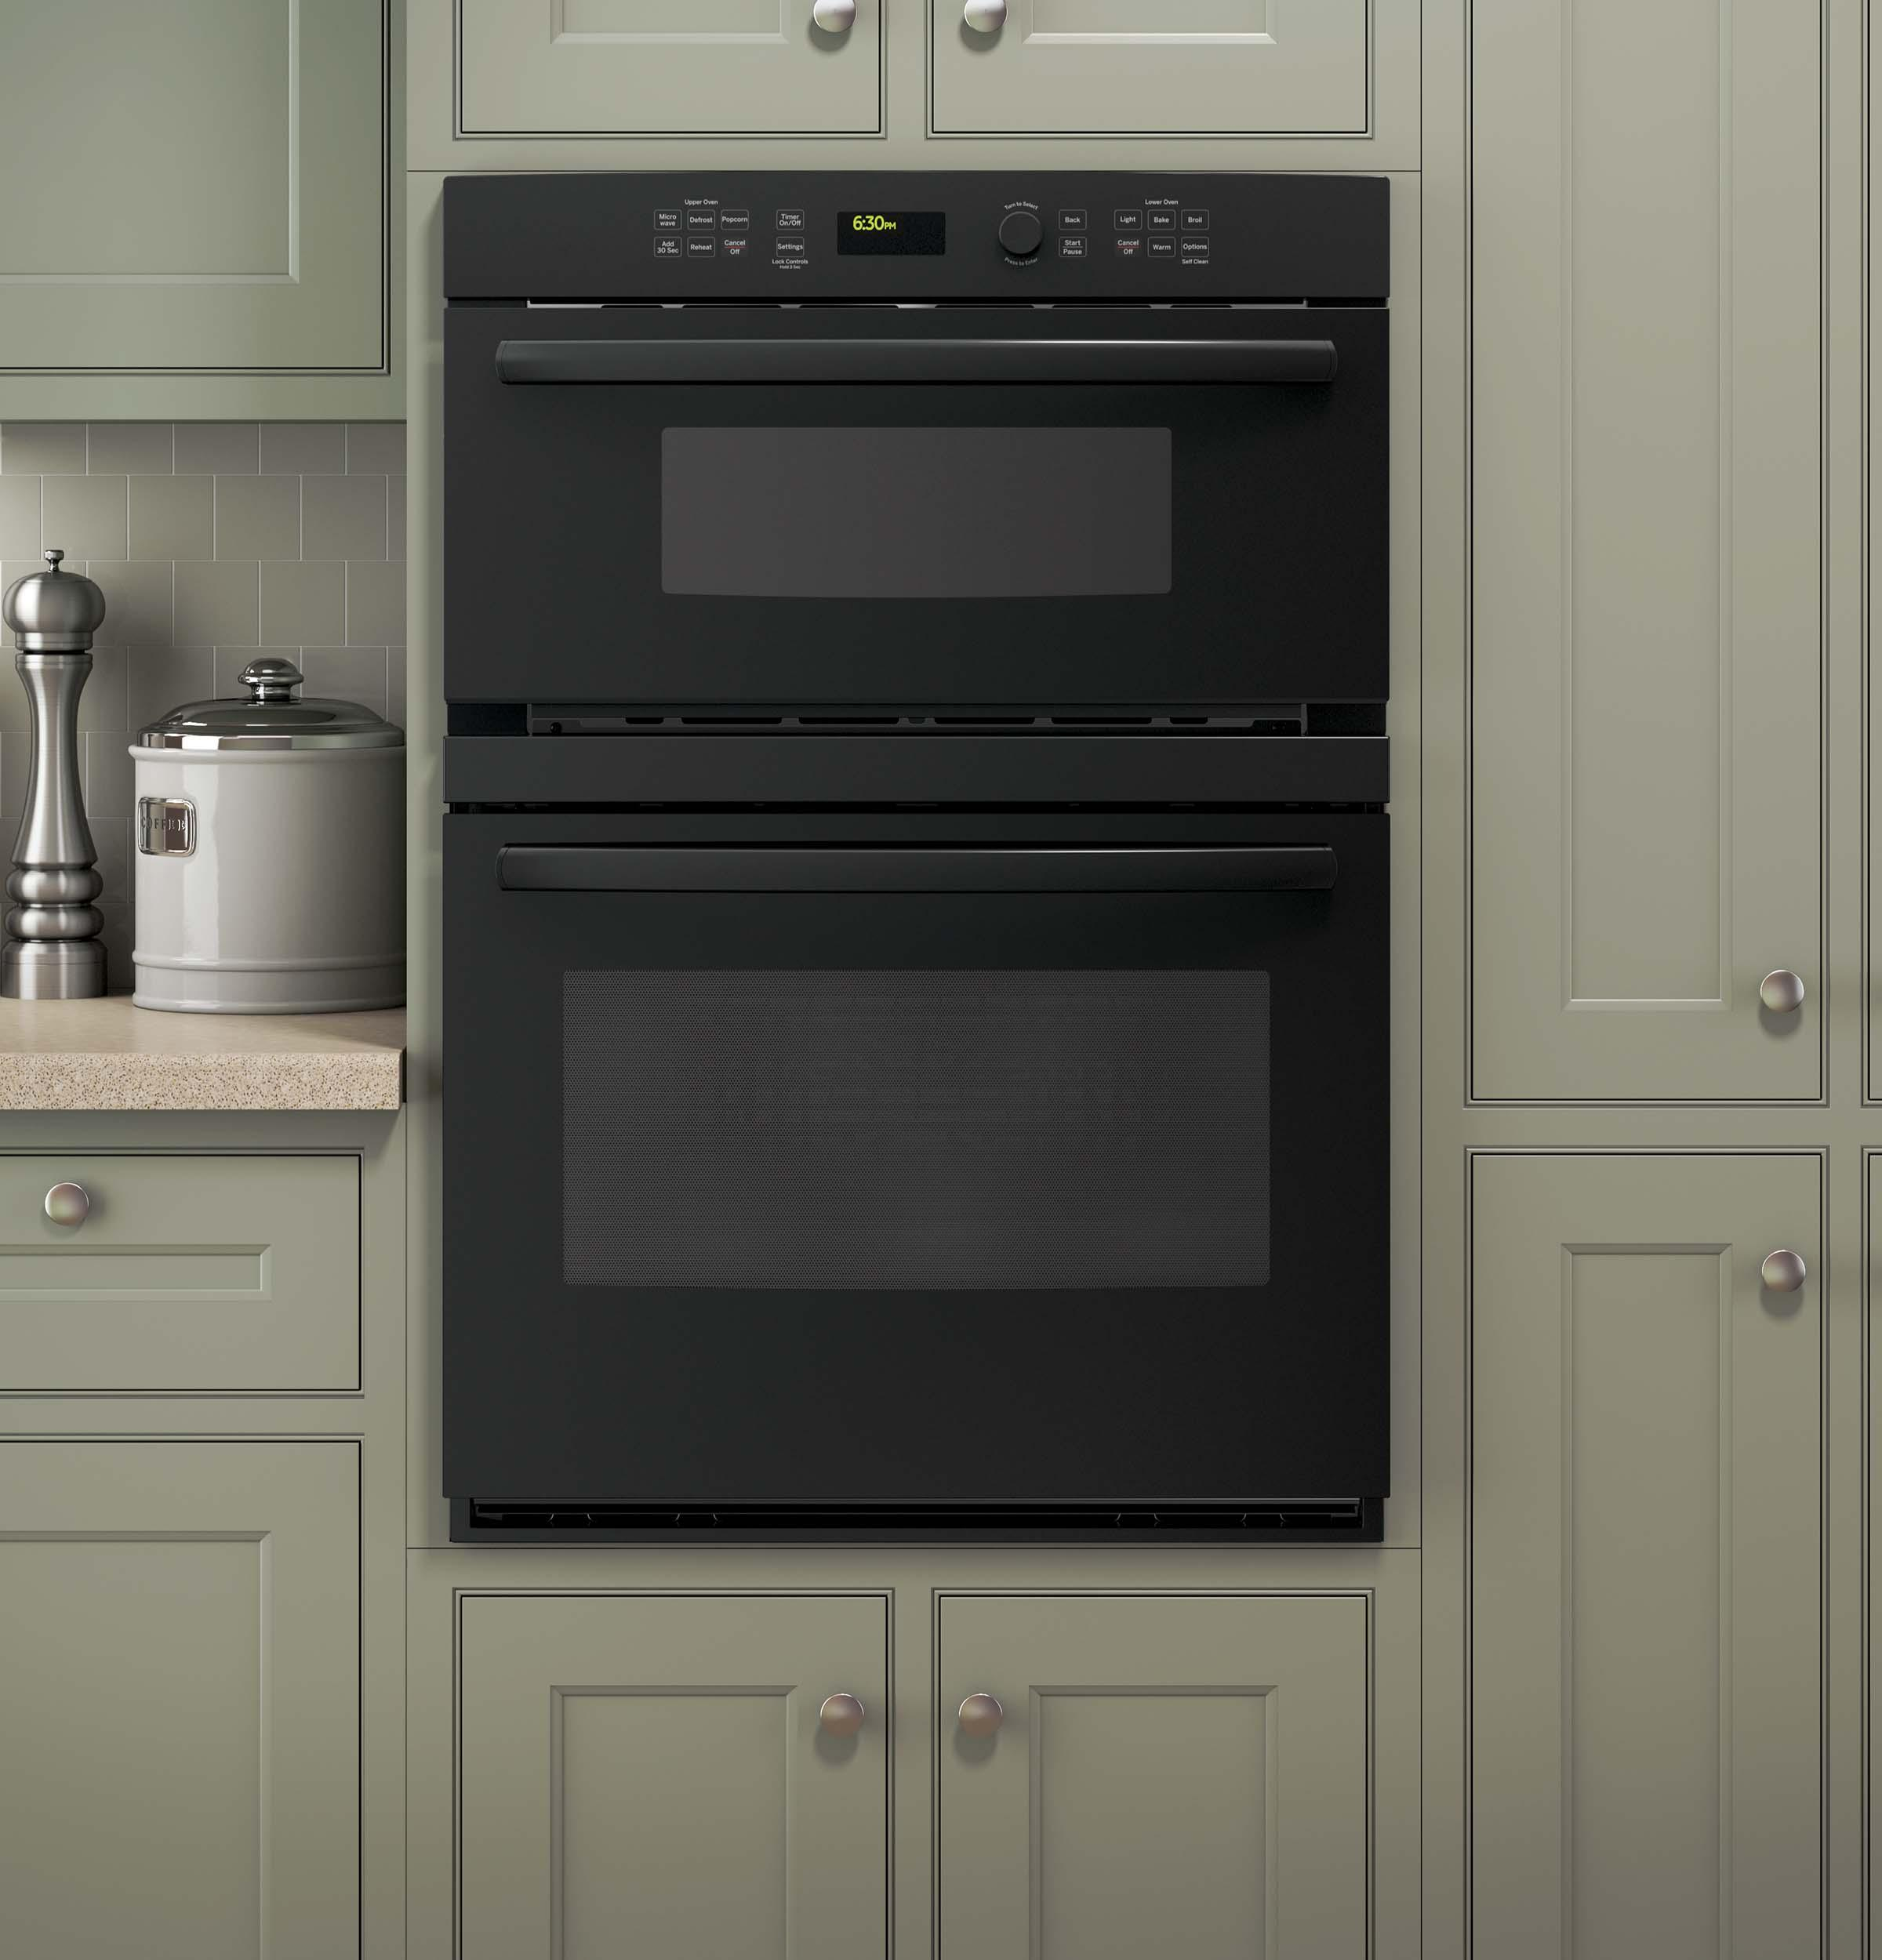 "GE Appliances Electric Wall Ovens 30"" Built-In Combination Oven - Item Number: JT3800DHBB"